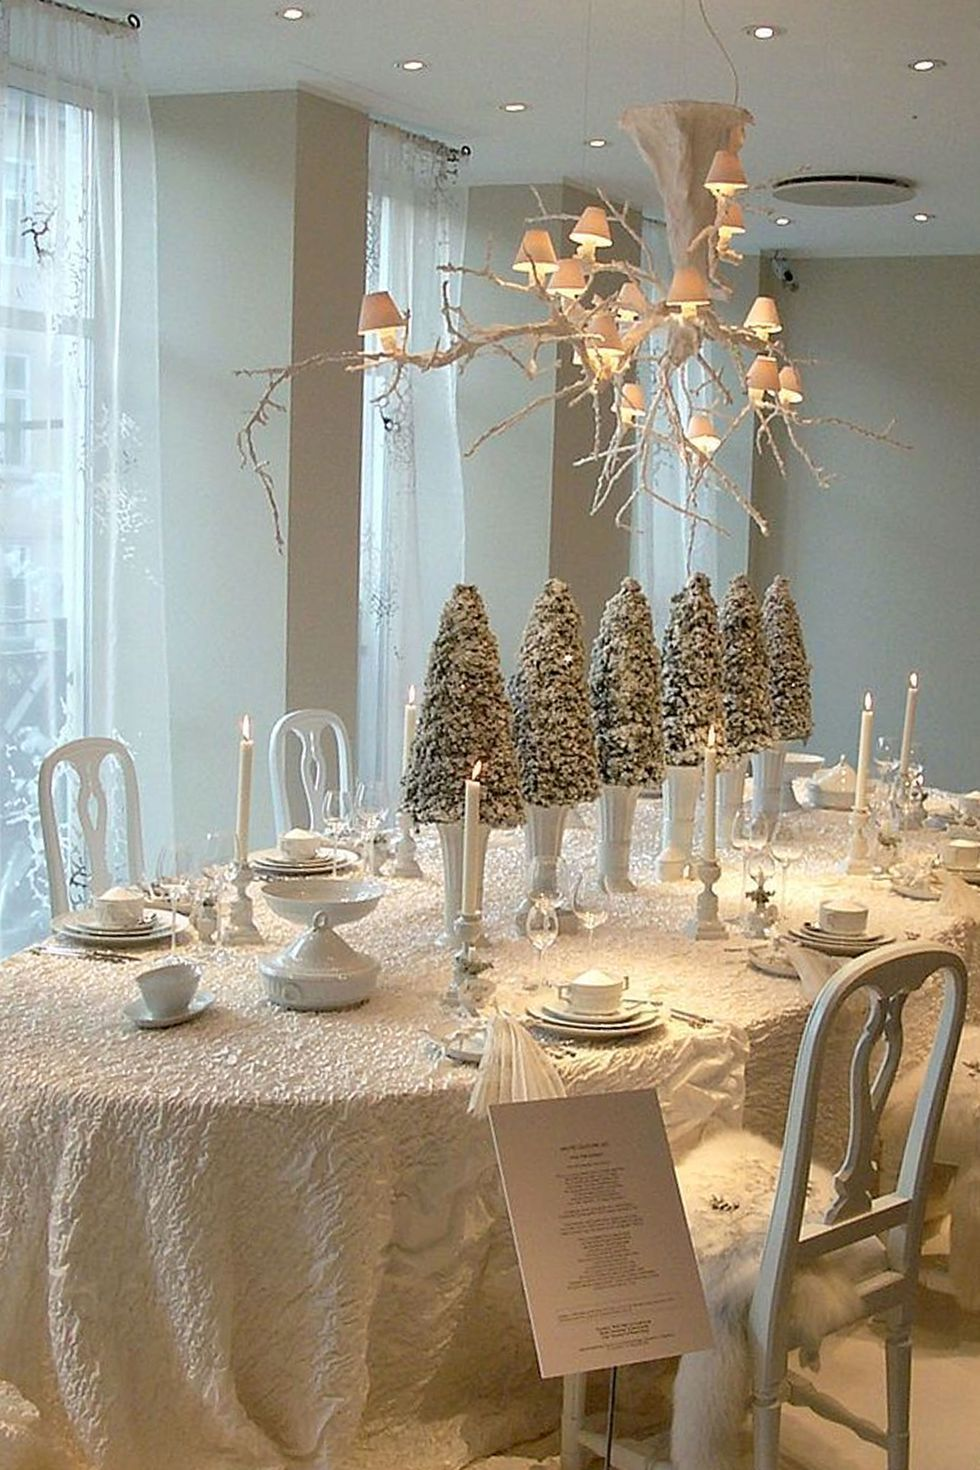 38 Elegant Christmas Table Setting Ideas Christmas Table Decorations Centerpiece Holiday Table Centerpieces Table Decorations